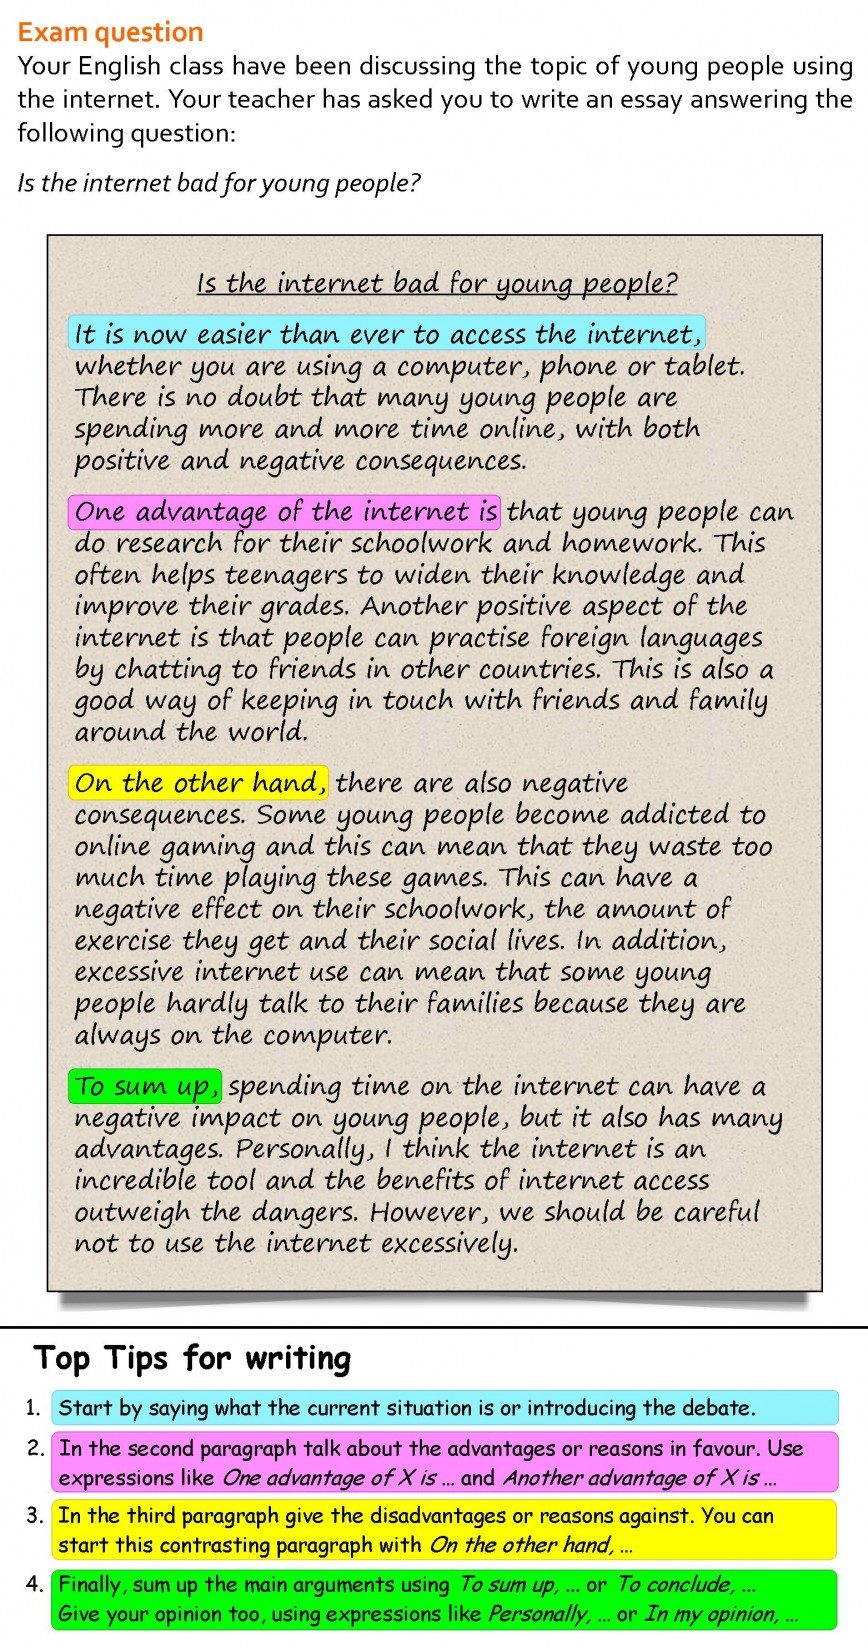 005 Essay Example B2w A For And Against 0 Fantastic Writing Tips Reddit Essays Fun People's Money